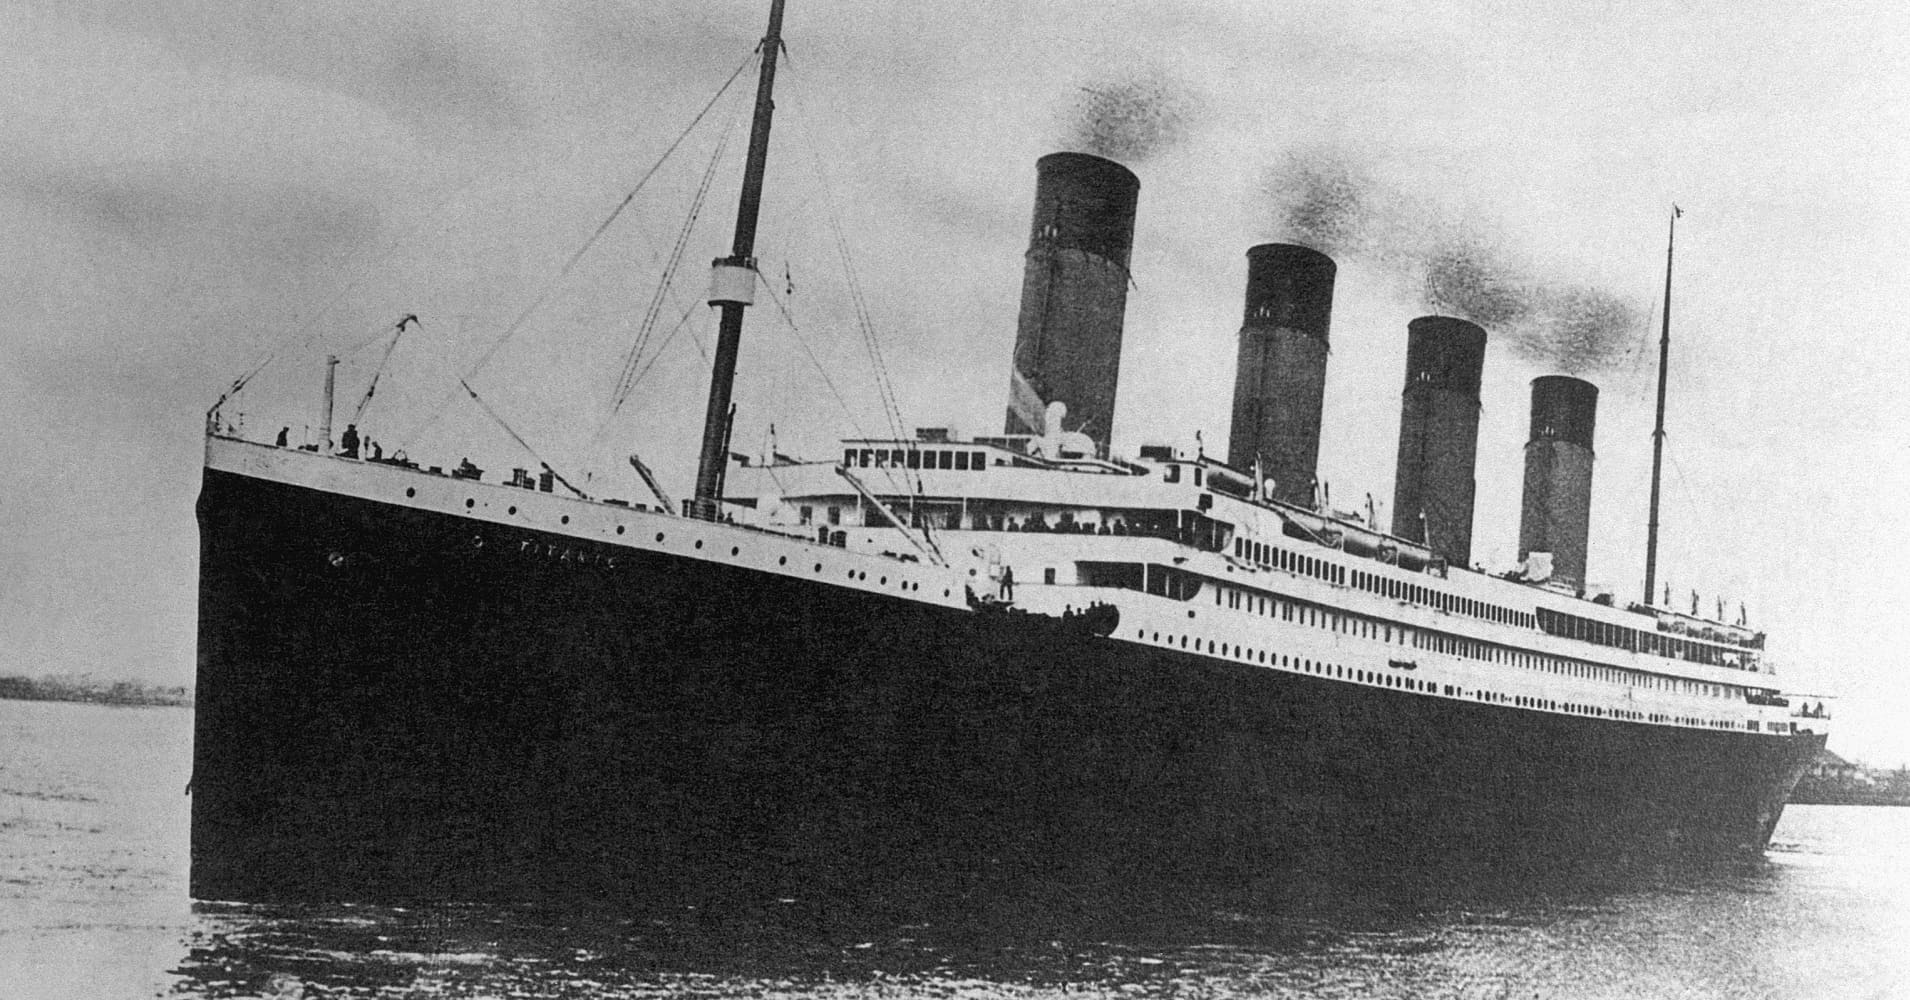 US economy like the Titanic — moving at full steam, with an iceberg ahead: Guggenheim